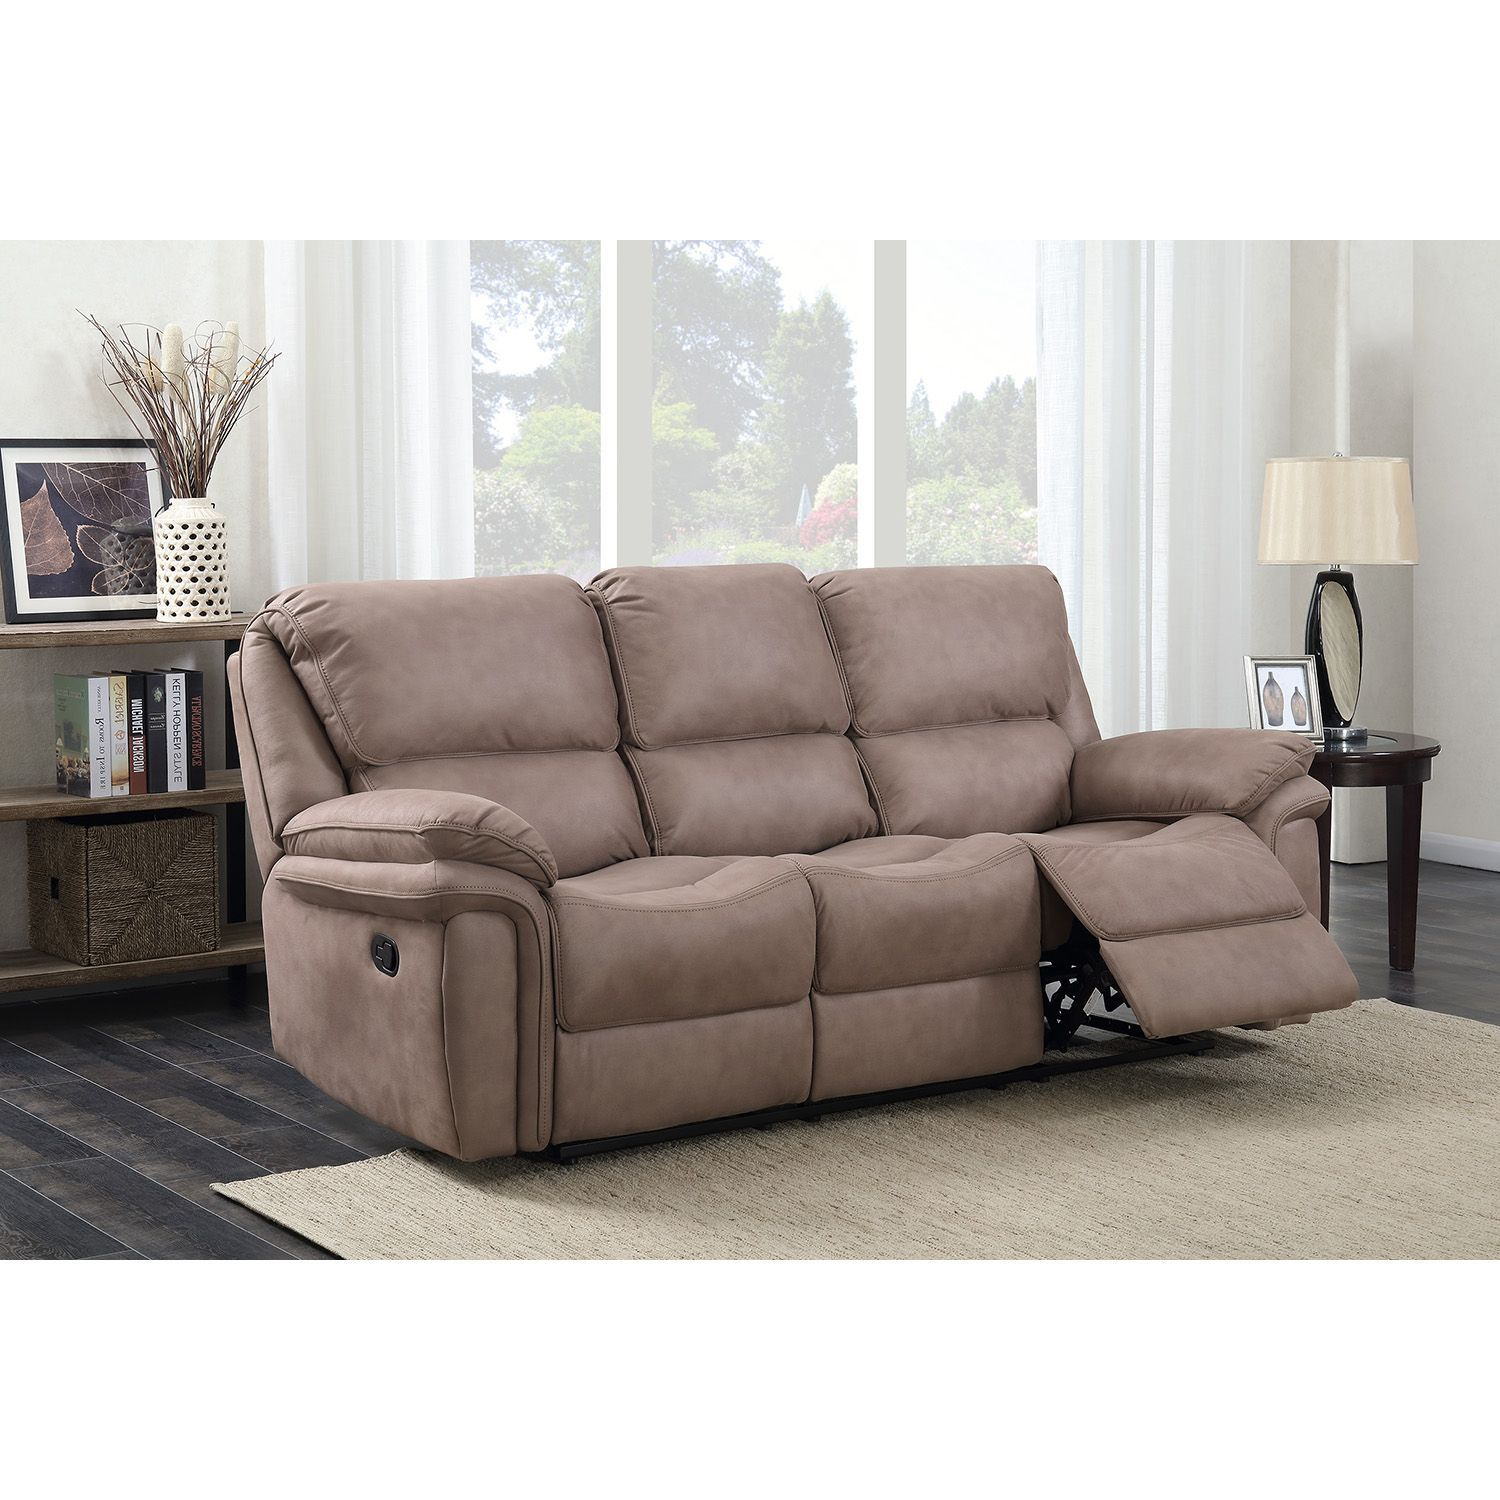 Pleasing Langston Fabric Sofa Sams Club Gramma Living Room In Unemploymentrelief Wooden Chair Designs For Living Room Unemploymentrelieforg